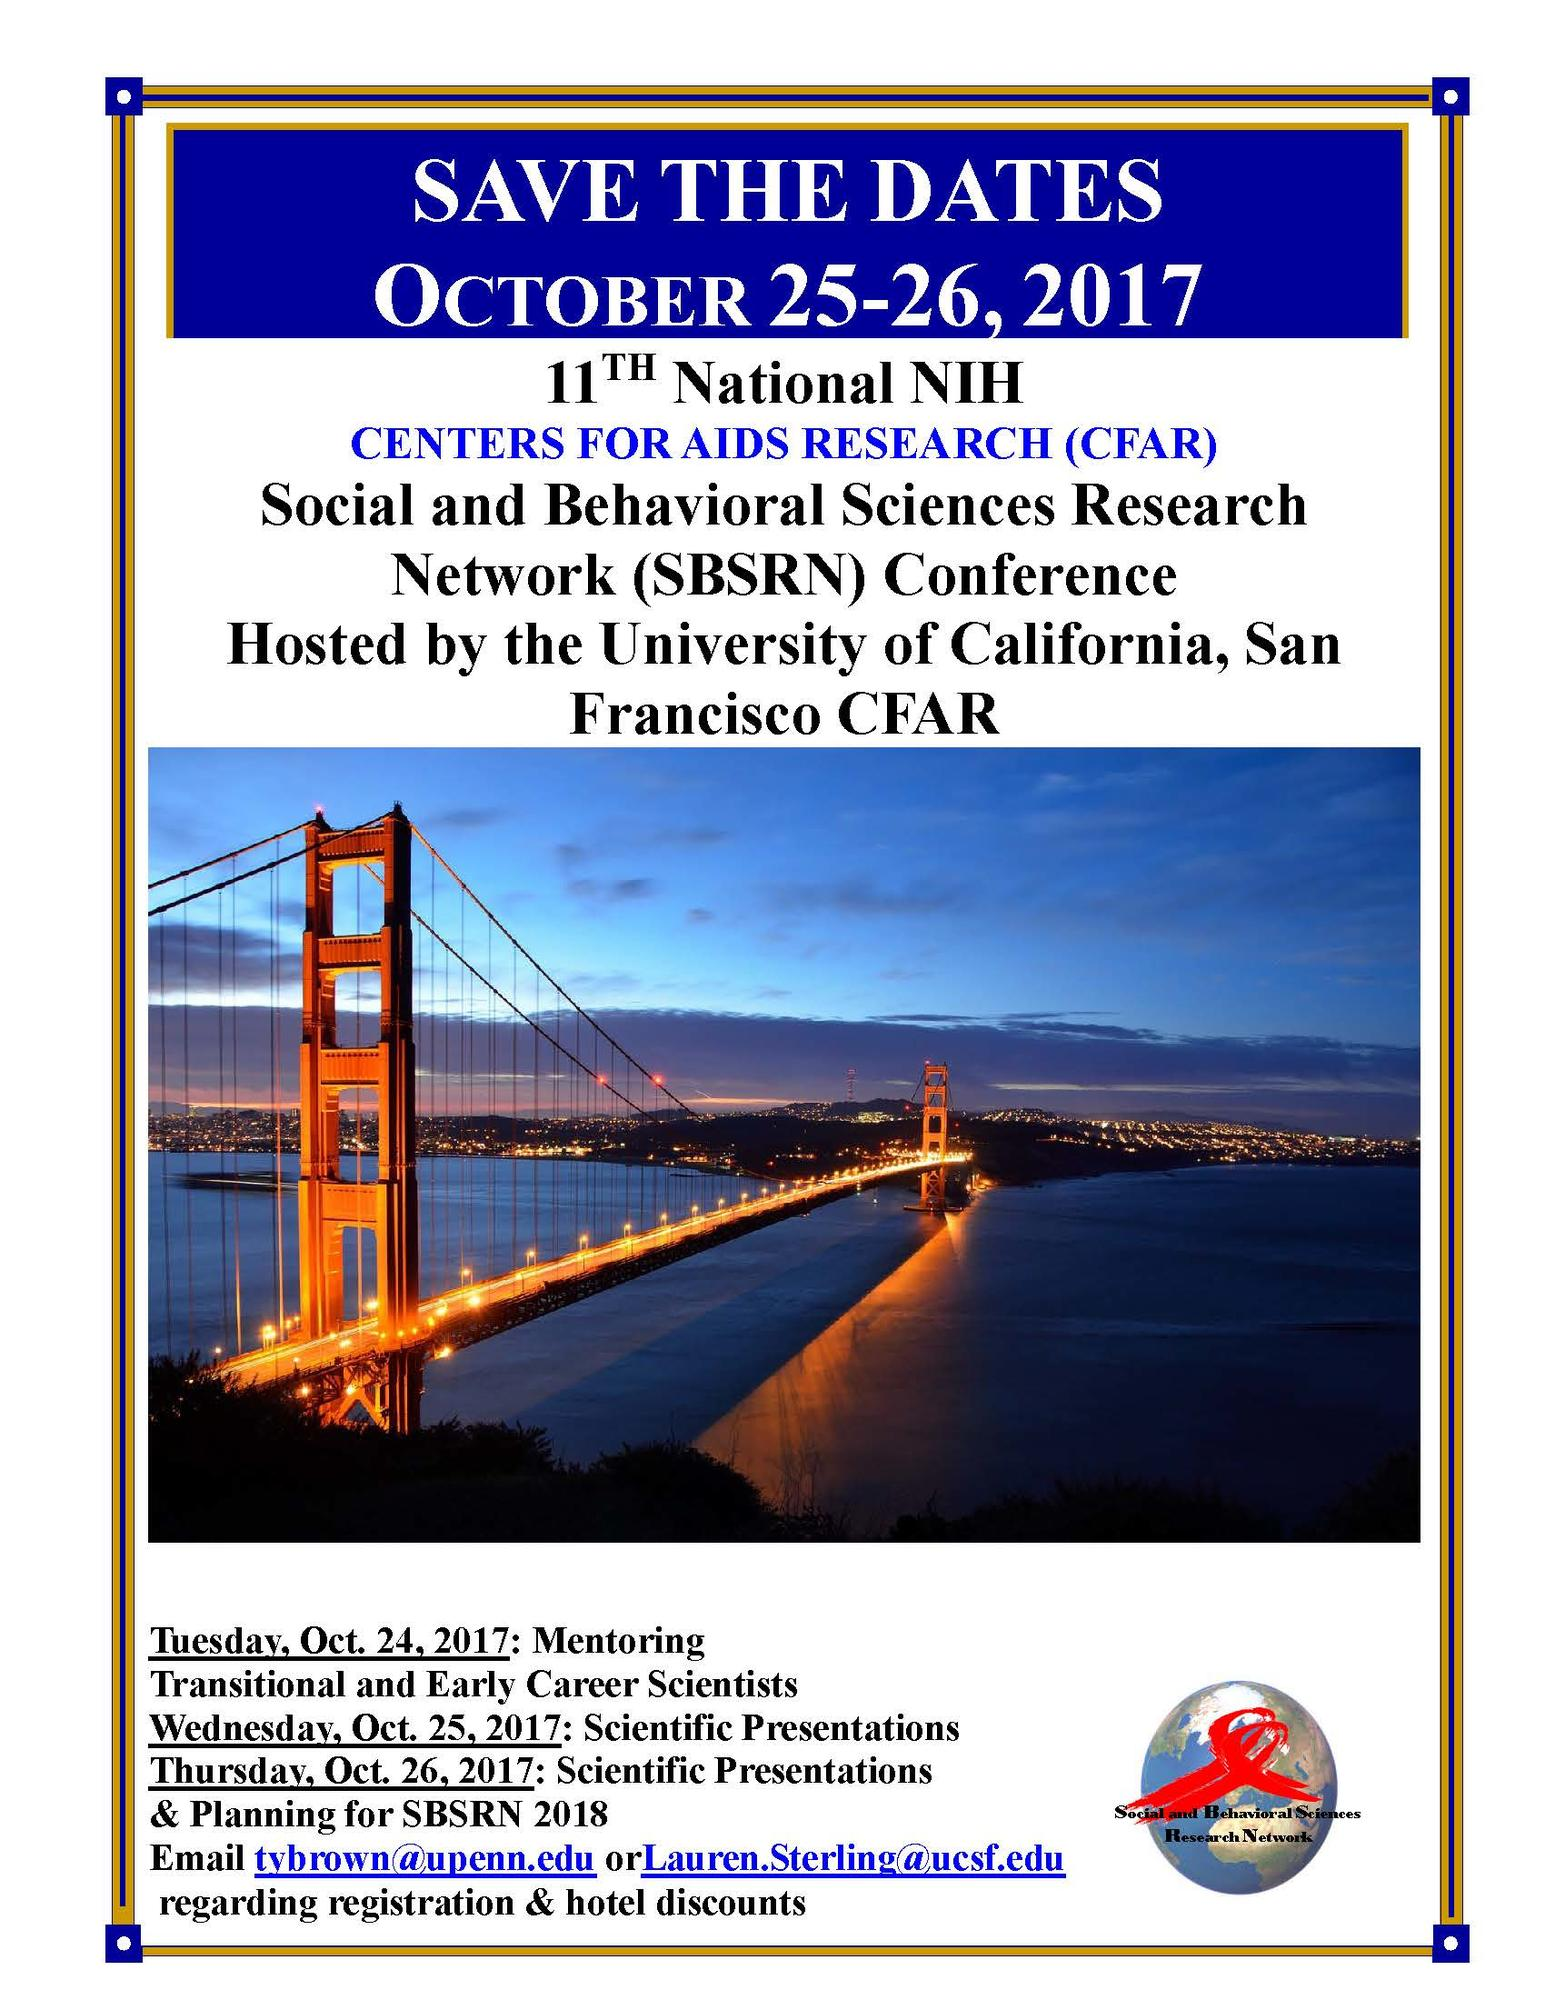 SBSRN conference 2017